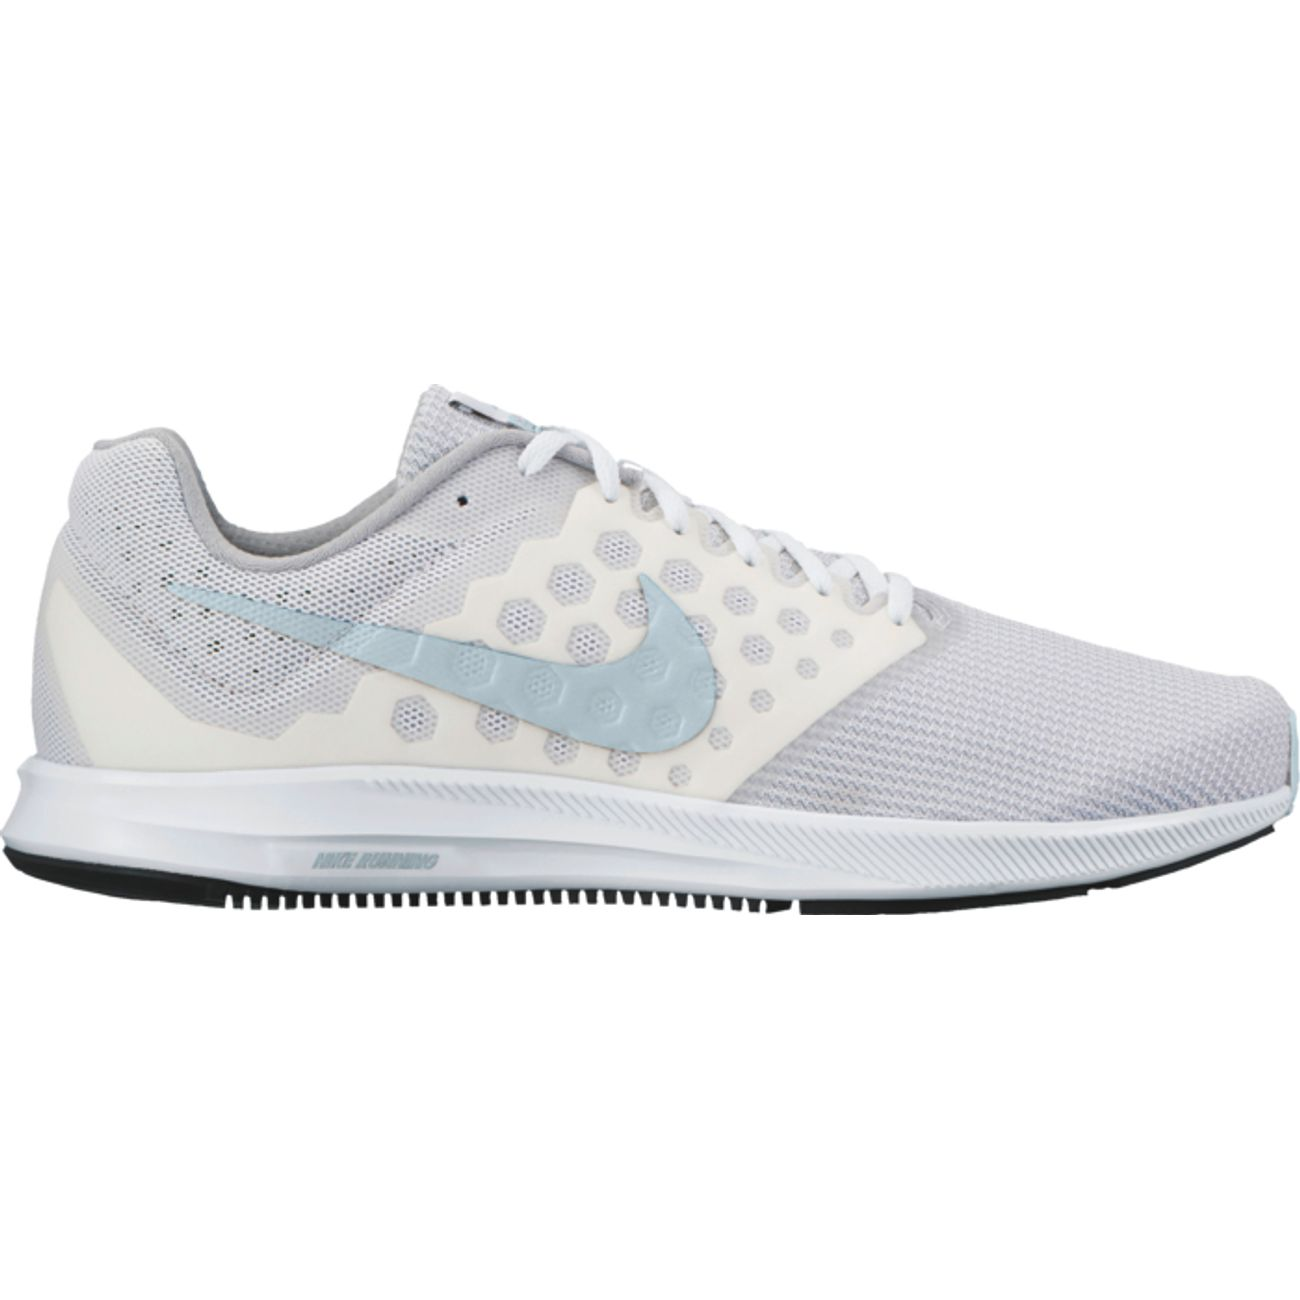 CHAUSSURES BASSES NIKE DOWNSHIFTER M